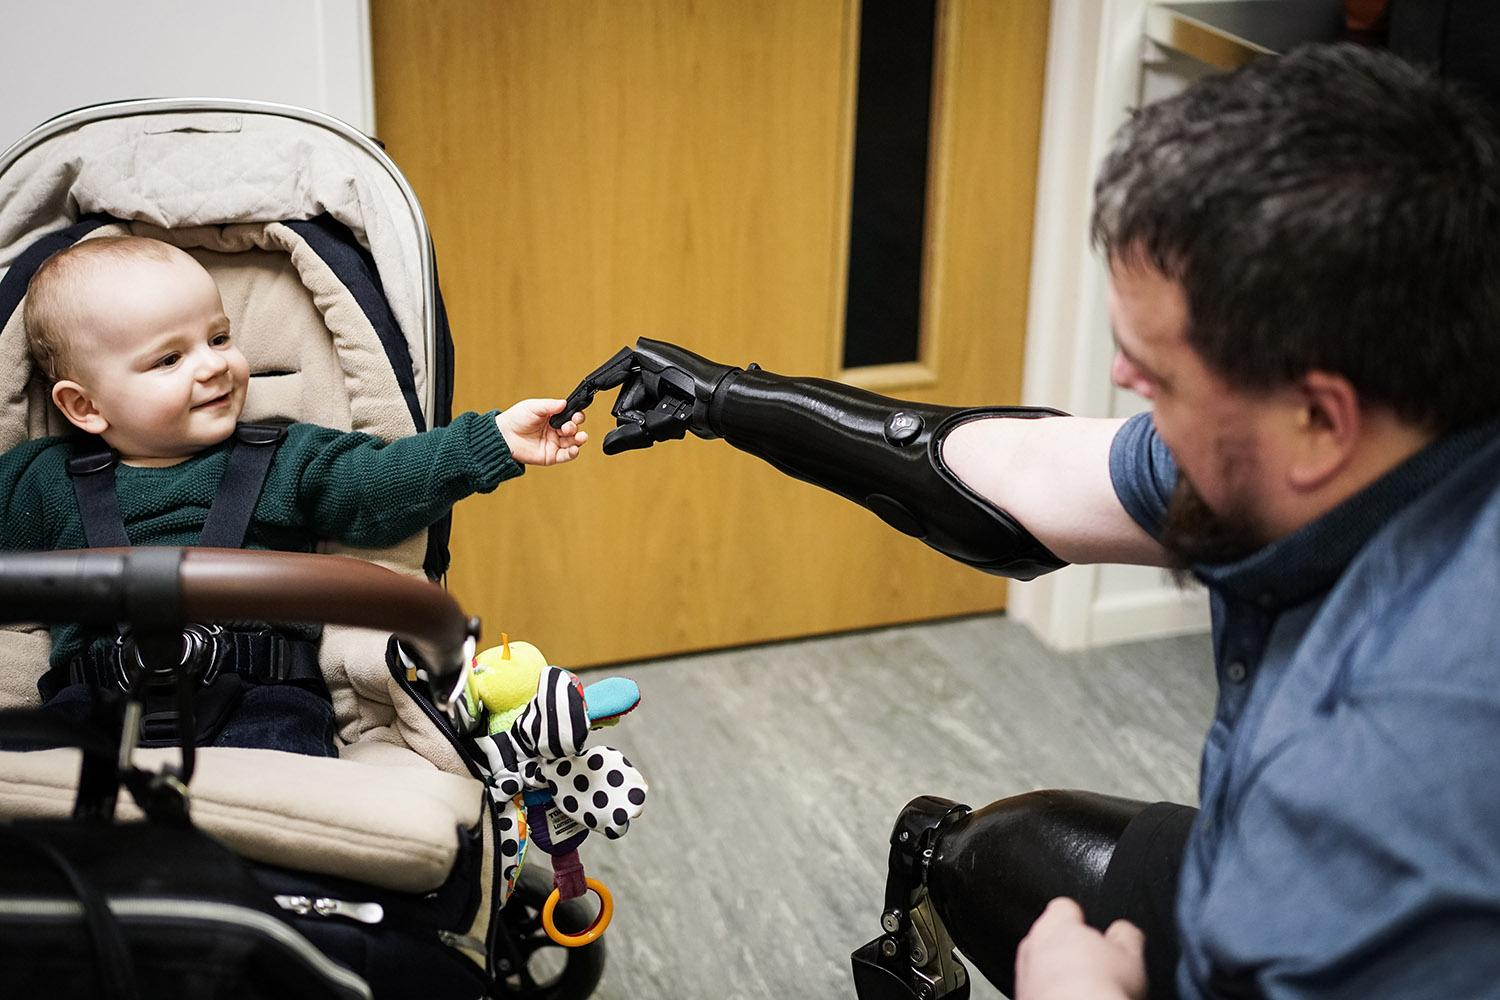 Danny gets his bionic hand